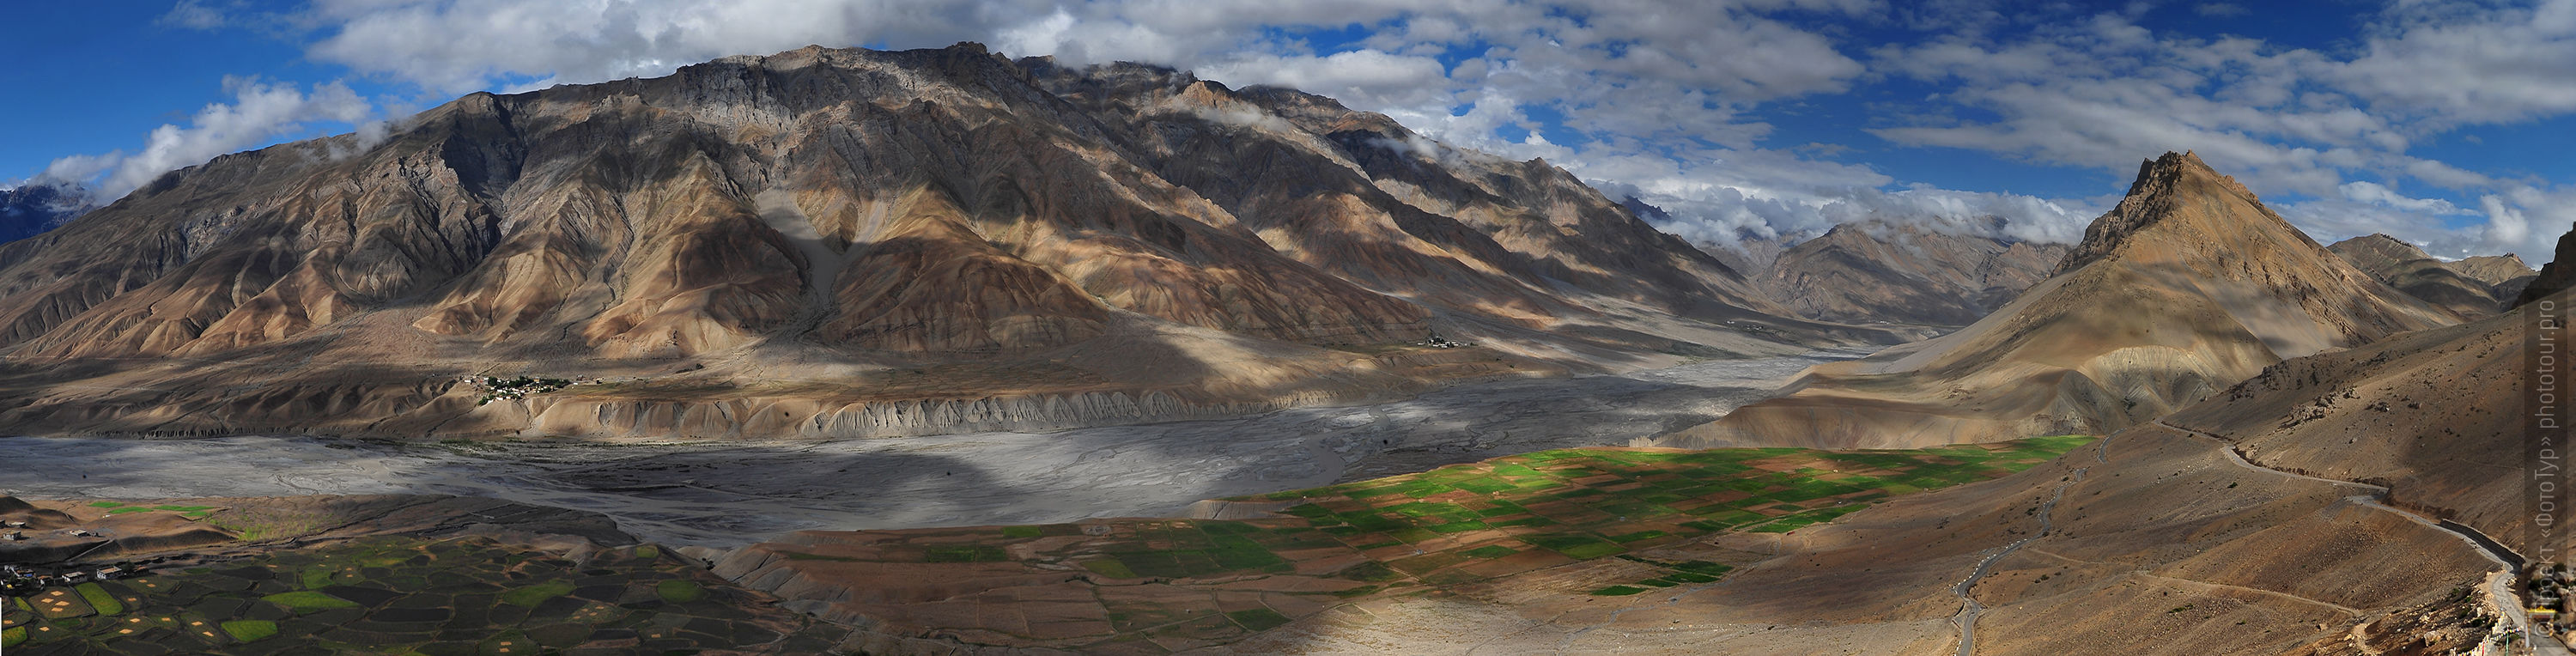 View of the valley from the roof of the monastery of Spiti Ki, Spiti Valley, Himalayas. Photo tour to the valley of Spiti, in August 2017.